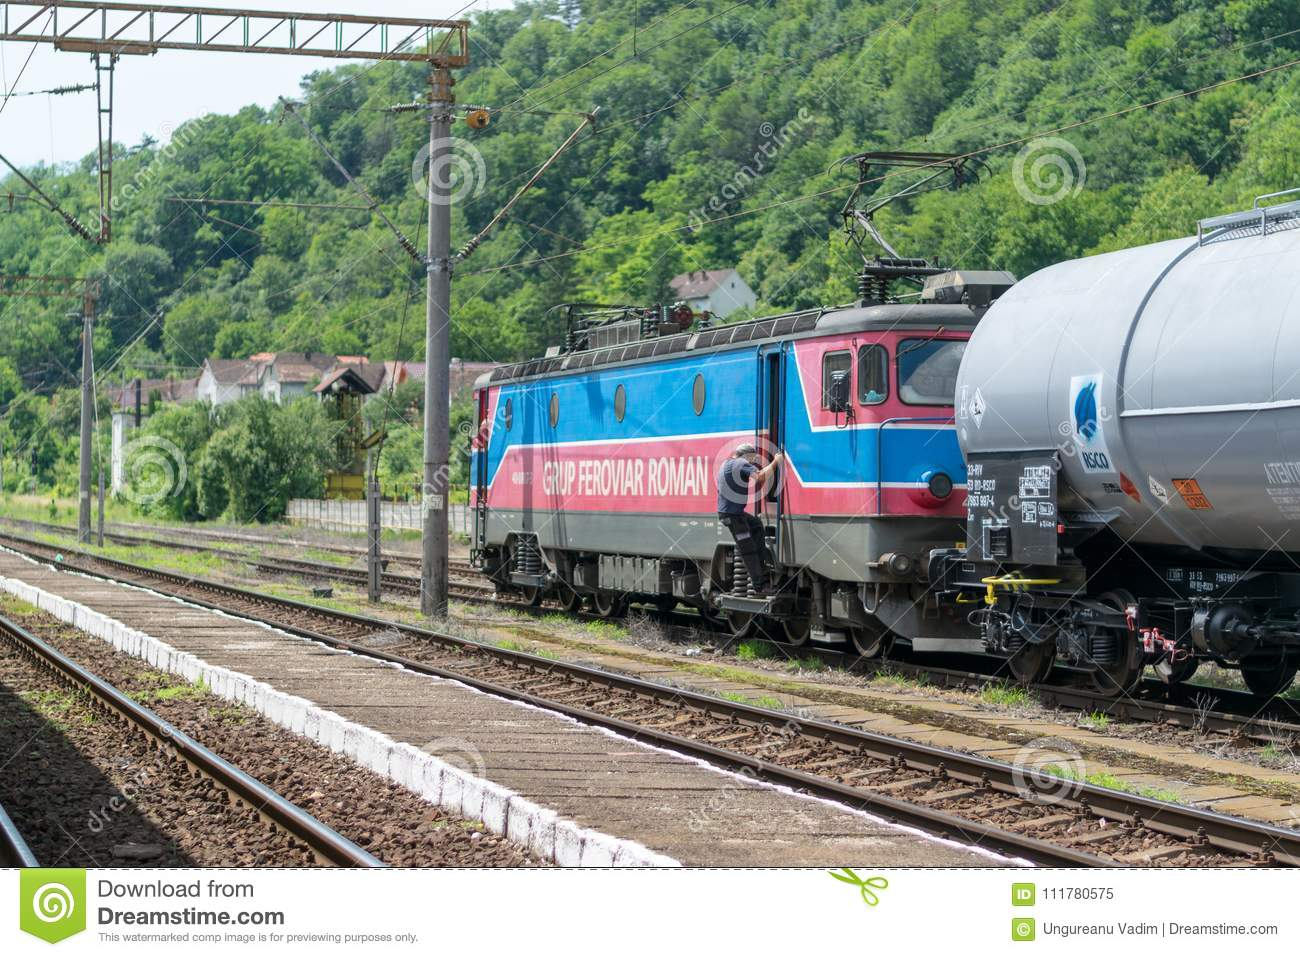 SIGHISOARA, ROMANIA - 1 JULY 2016: Train conductor get on the train locomotive with cargo wagons at the Sighisoara train station i